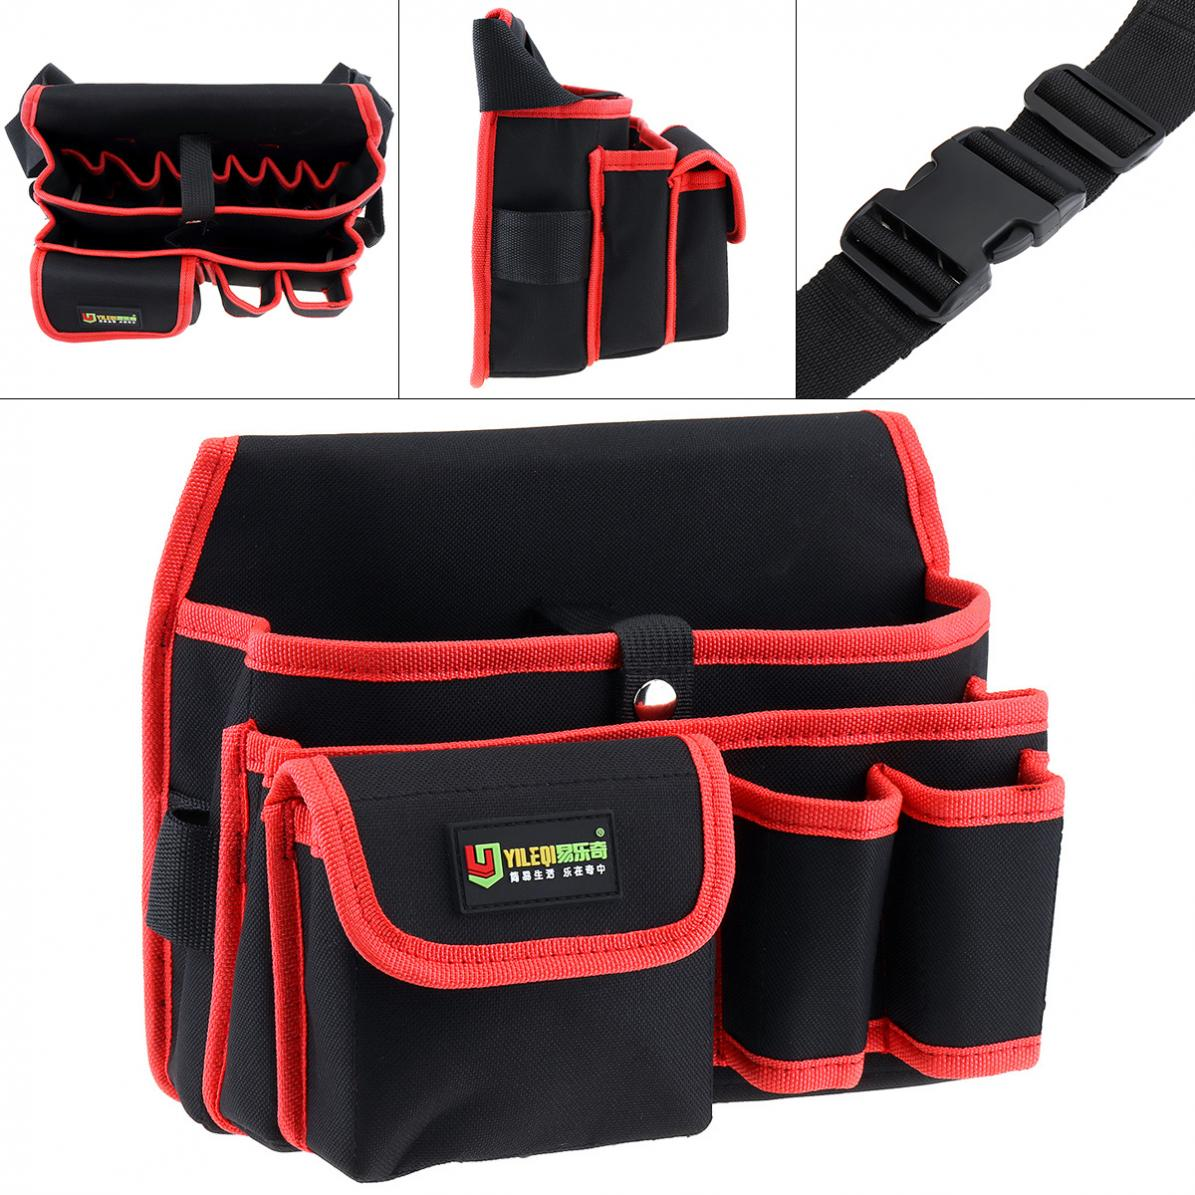 Multifunctional Oxford Cloth Waterproof Tool Bag With 9 Holes 3 Pockets And 130cm Single Hanging Strap For Maintenance Tools